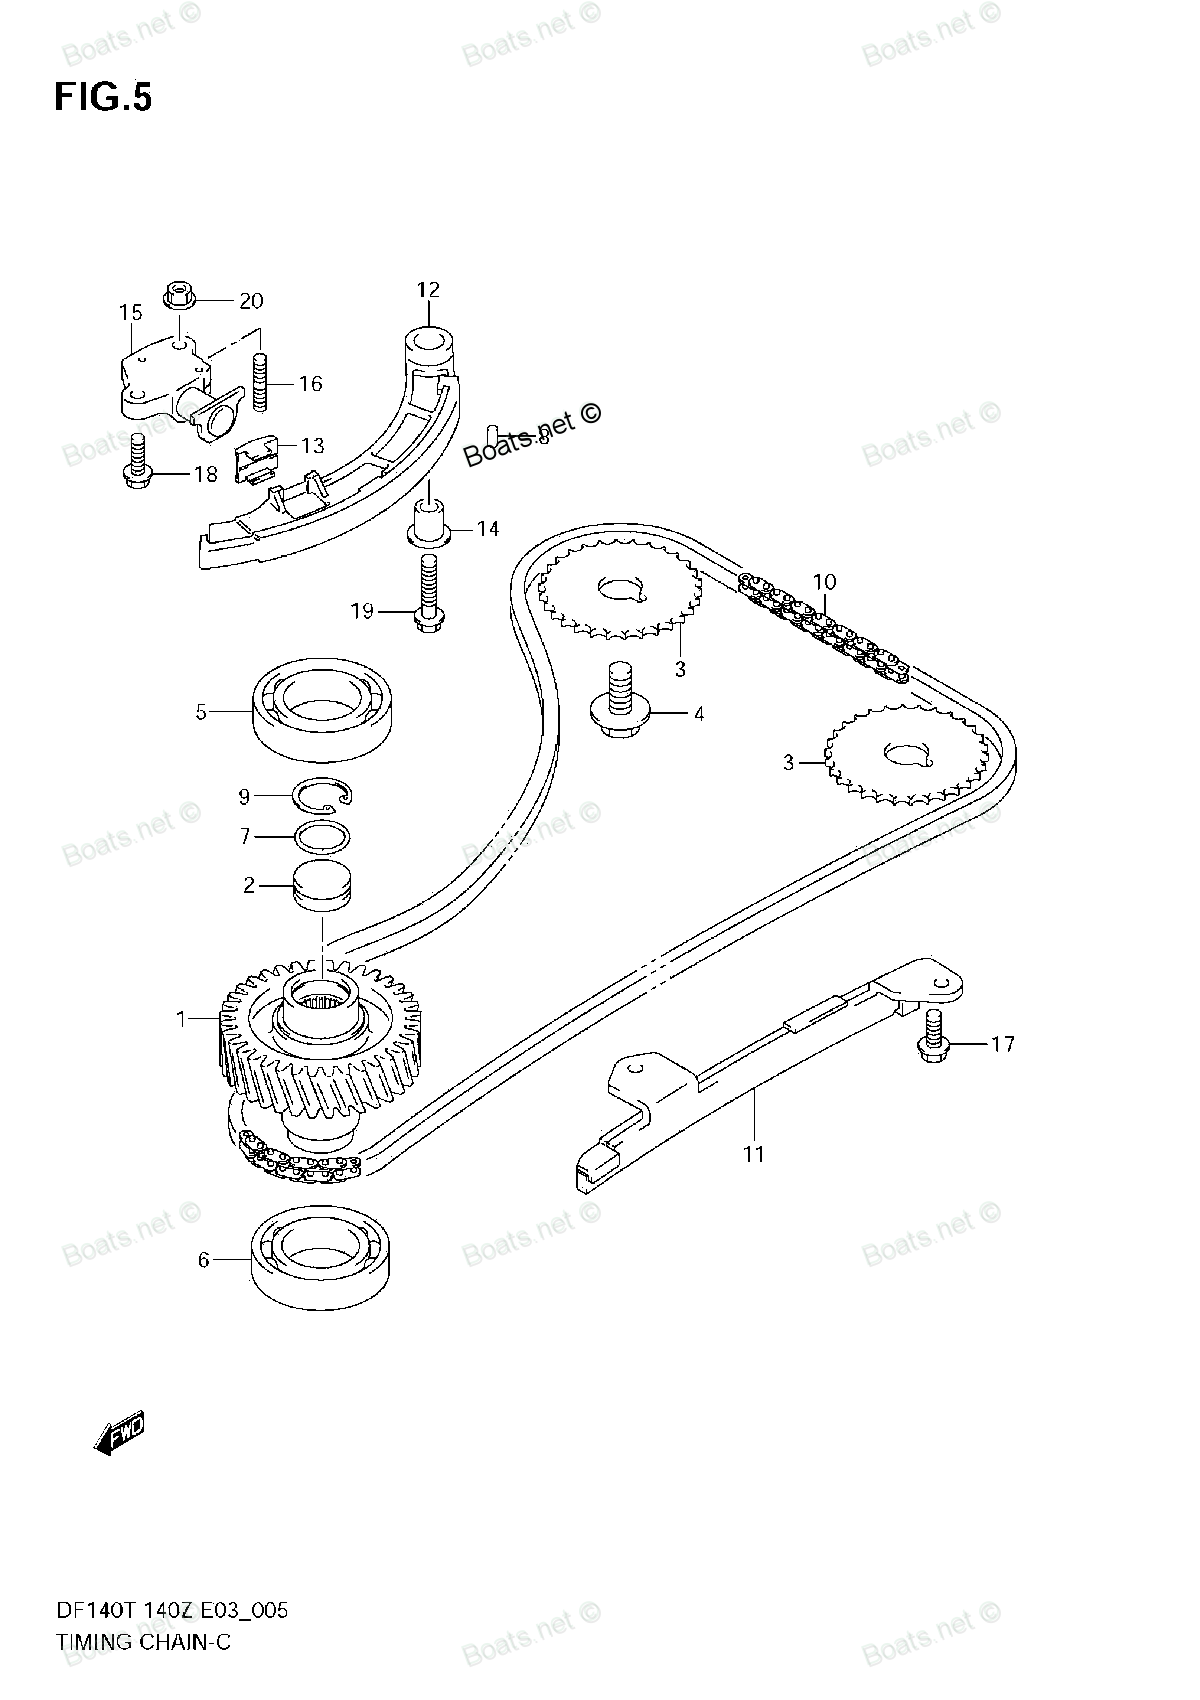 2003 Ford Taurus Engine Diagram Of Timing Chain Image Details